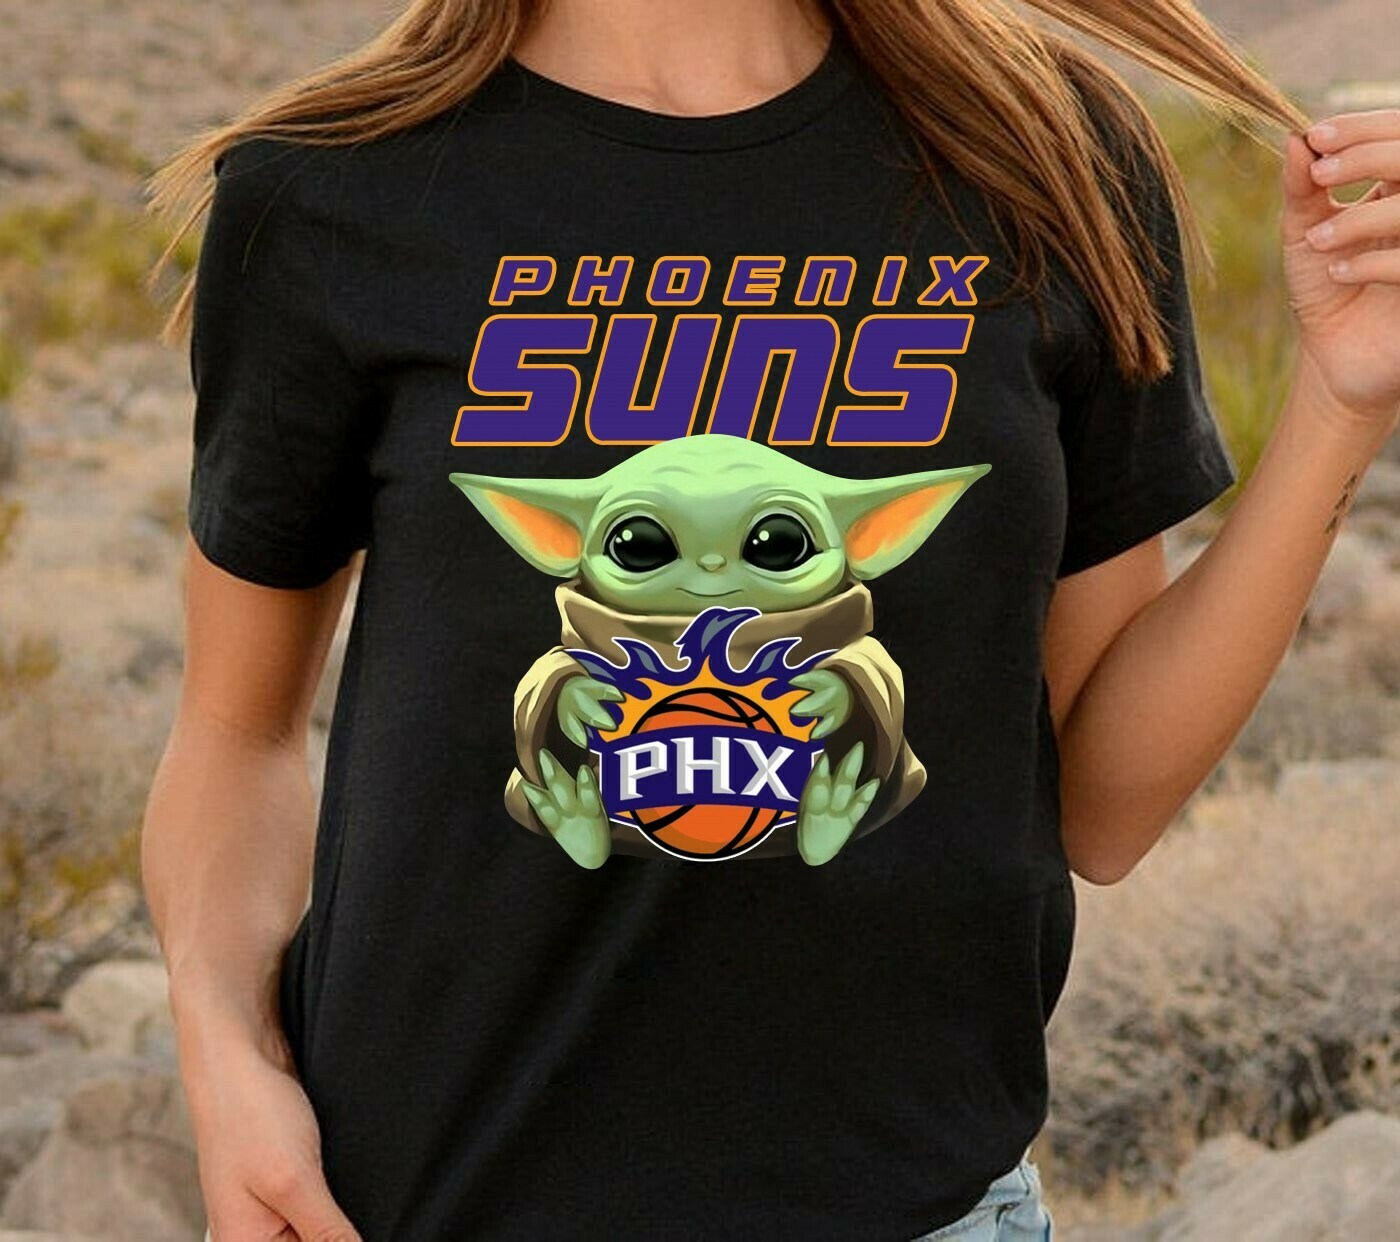 Phoenix Suns PHX Baby Yoda Star Wars The Mandalorian The Child First Memories Floating NBA Basketball Dad Mon Kid Fan Gift T-Shirt Long Sleeve Sweatshirt Hoodie Jolly Family Gifts